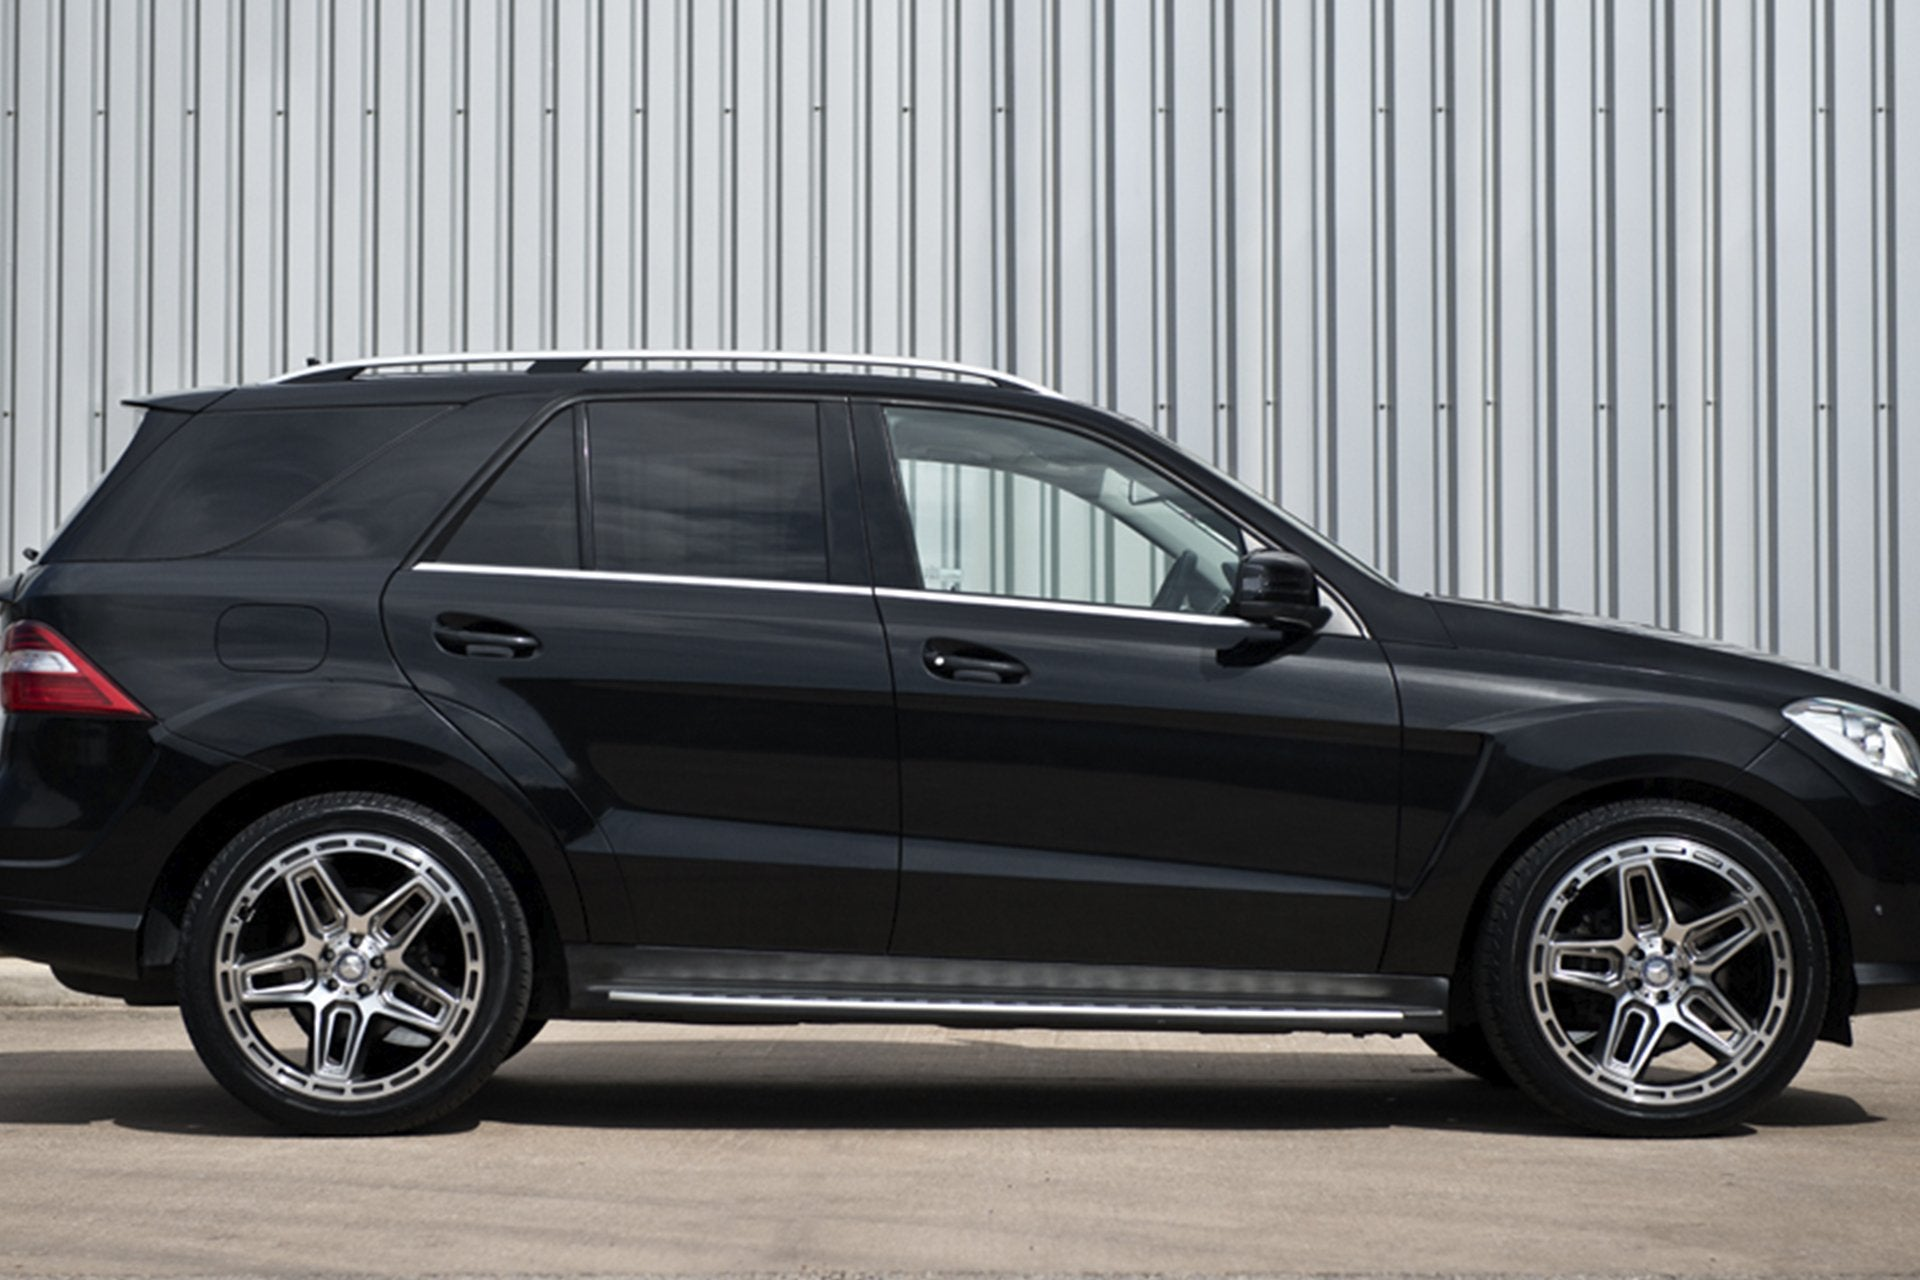 Mercedes ML (2012-2016) Exterior Styling Pack